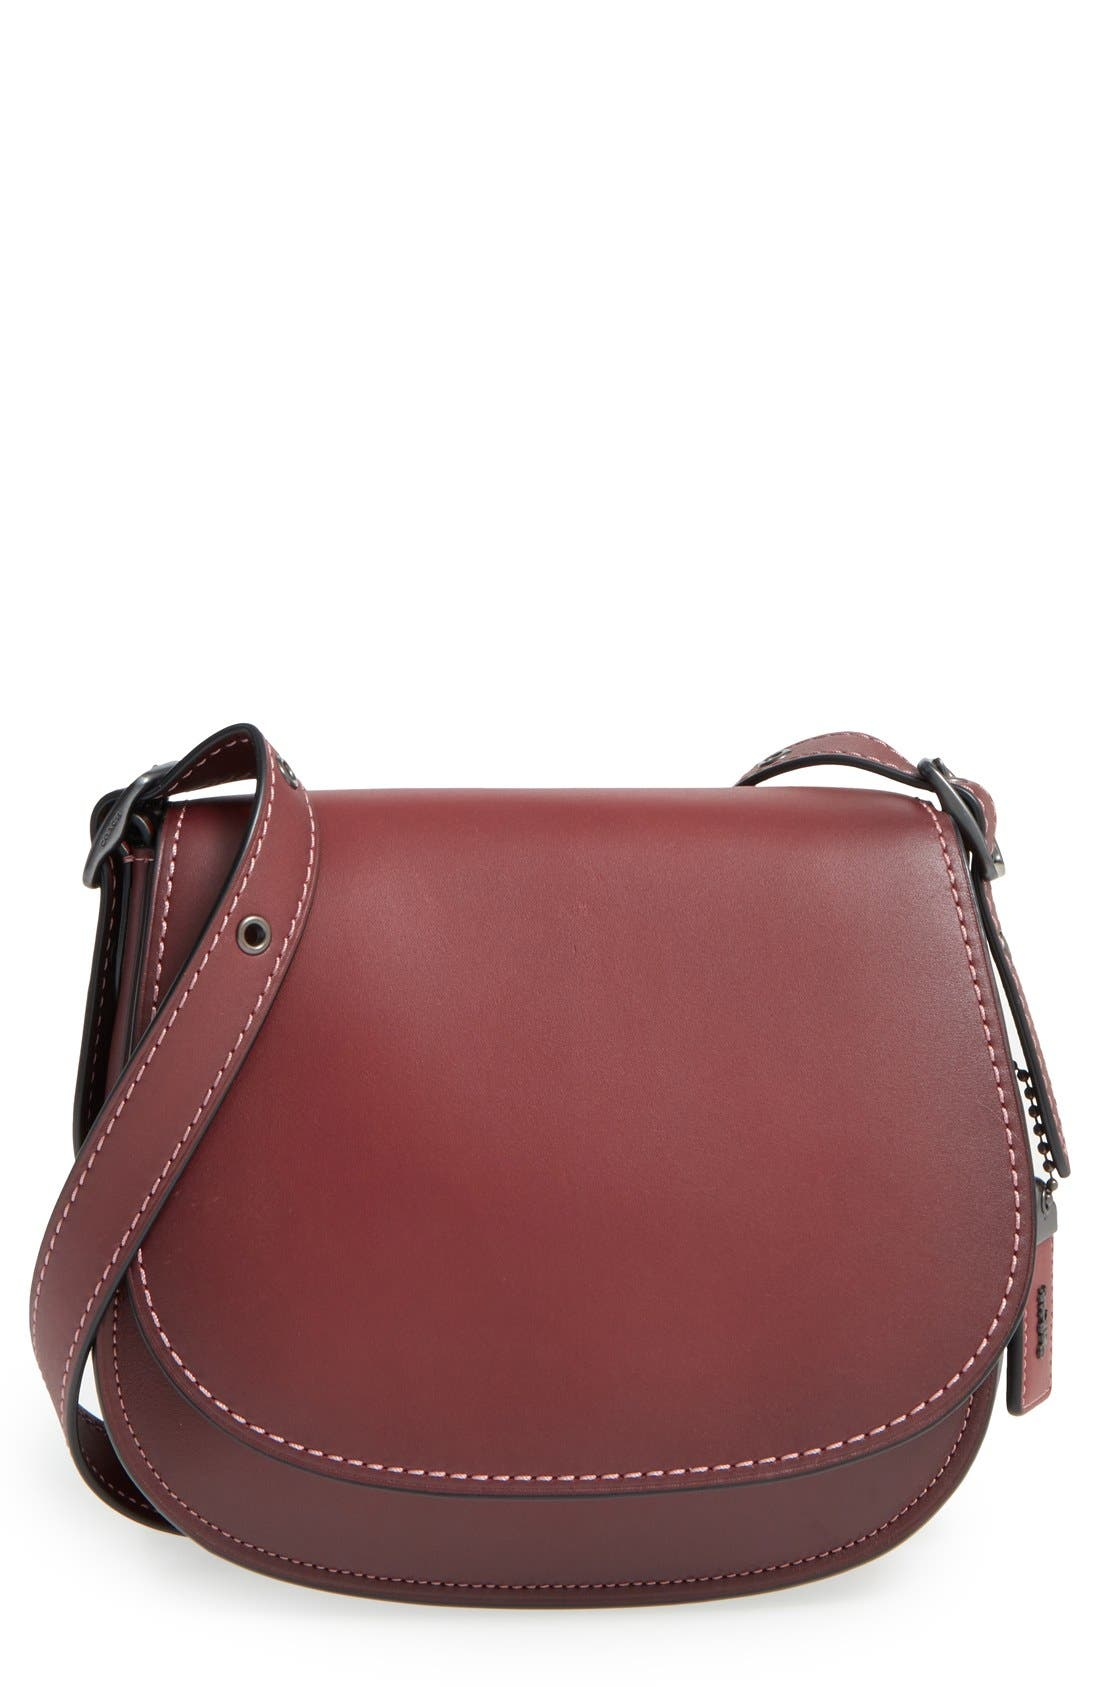 Alternate Image 1 Selected - COACH 1941 '23' Leather Saddle Bag